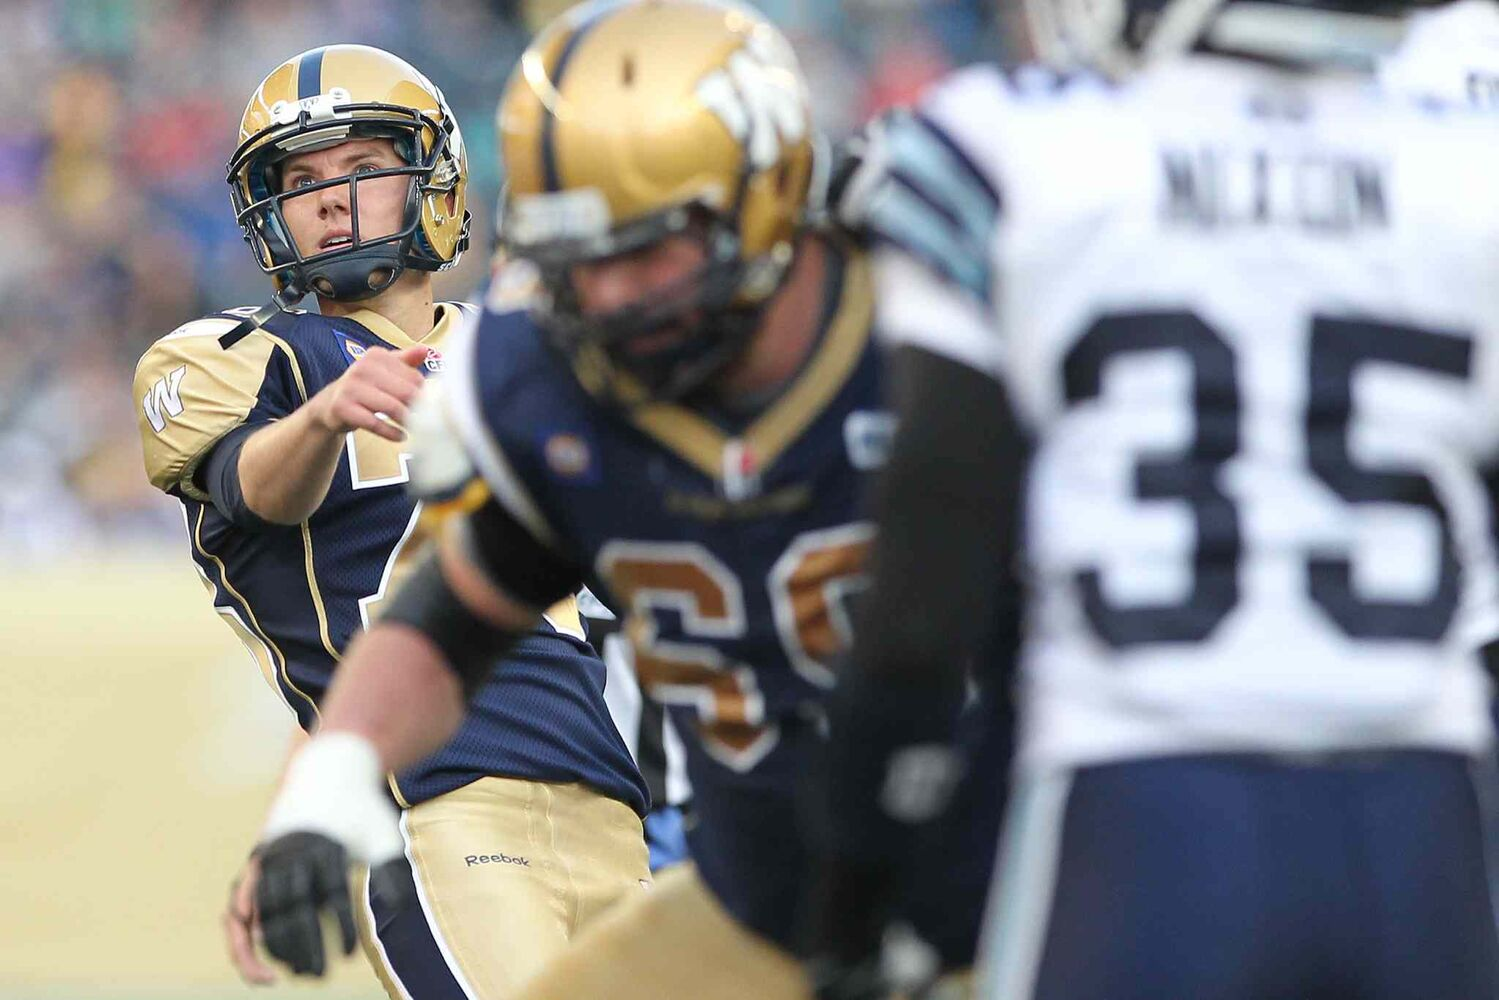 Bombers kicker Brett Maher boots a 47-yard field goal during the first half. (JOHN WOODS / WINNIPEG FREE PRESS)